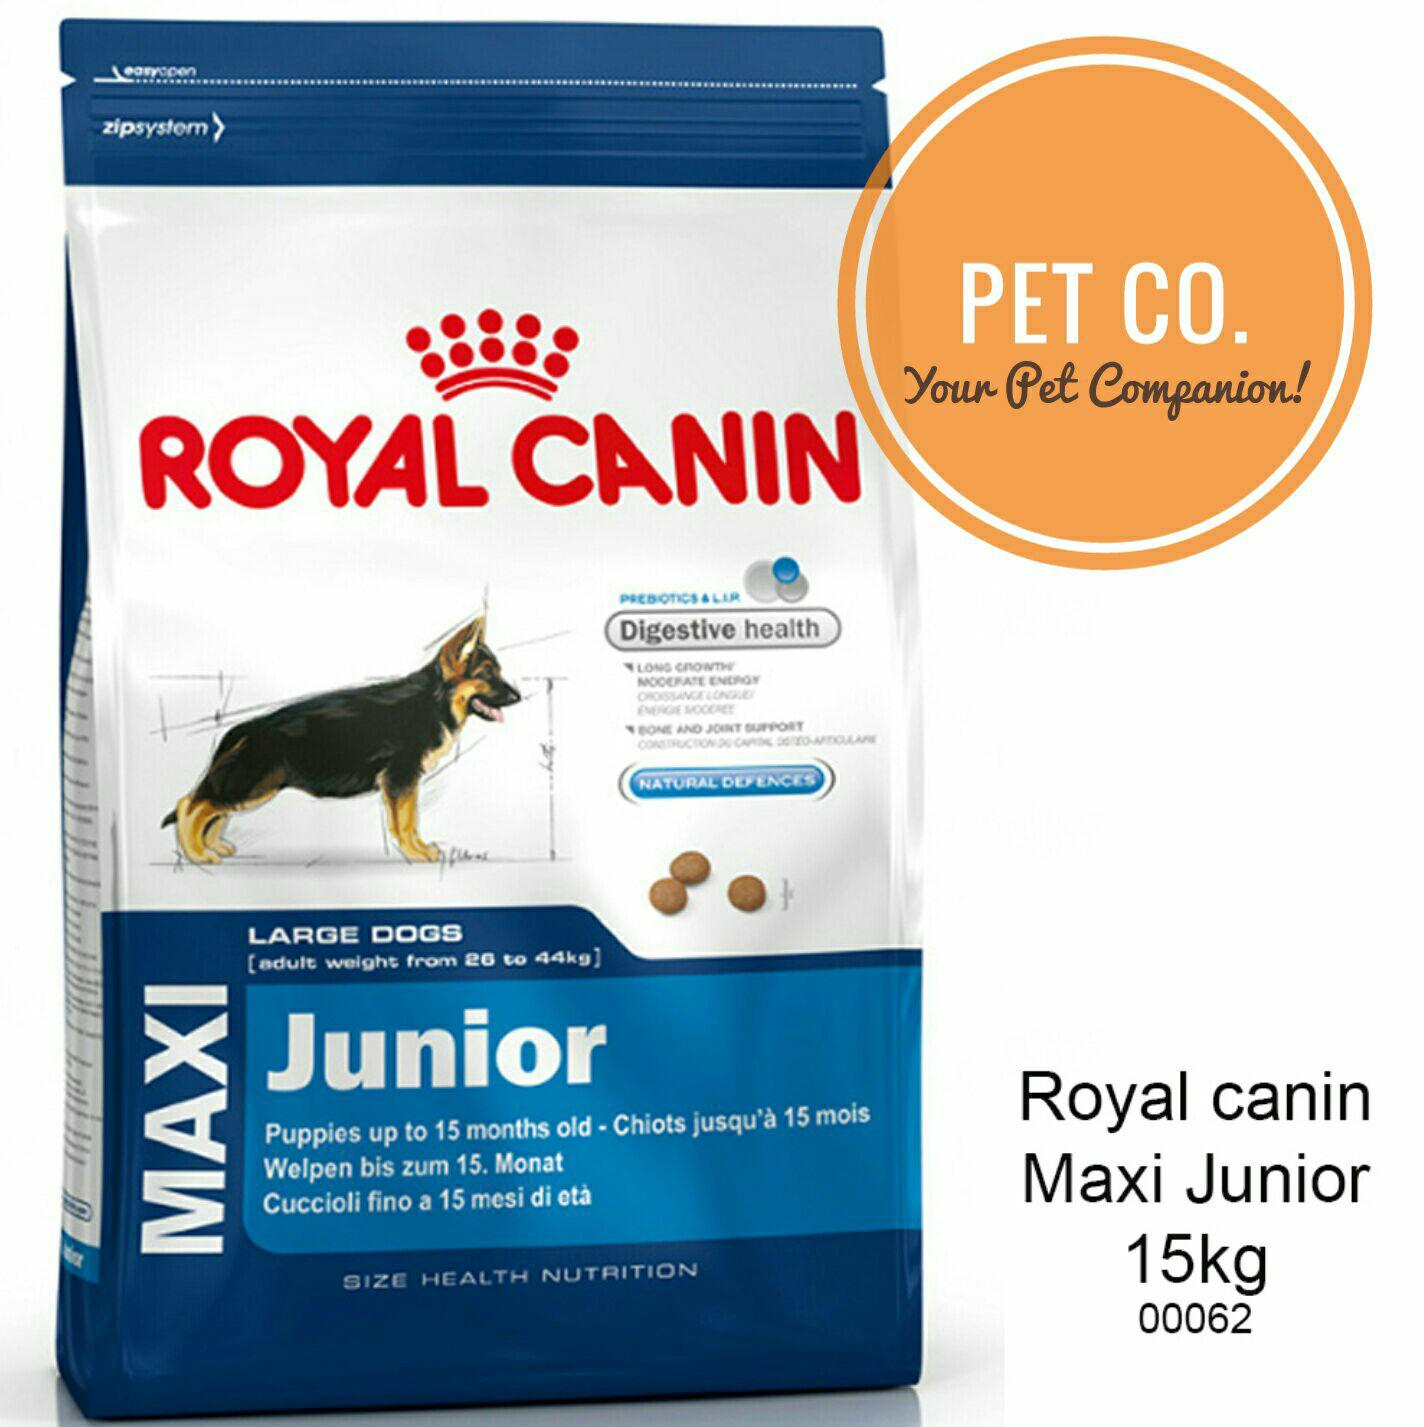 Royal Canin Philippines Price List Cat Dog Food For Persian Adult 1kg Maxi Junior 15kgs